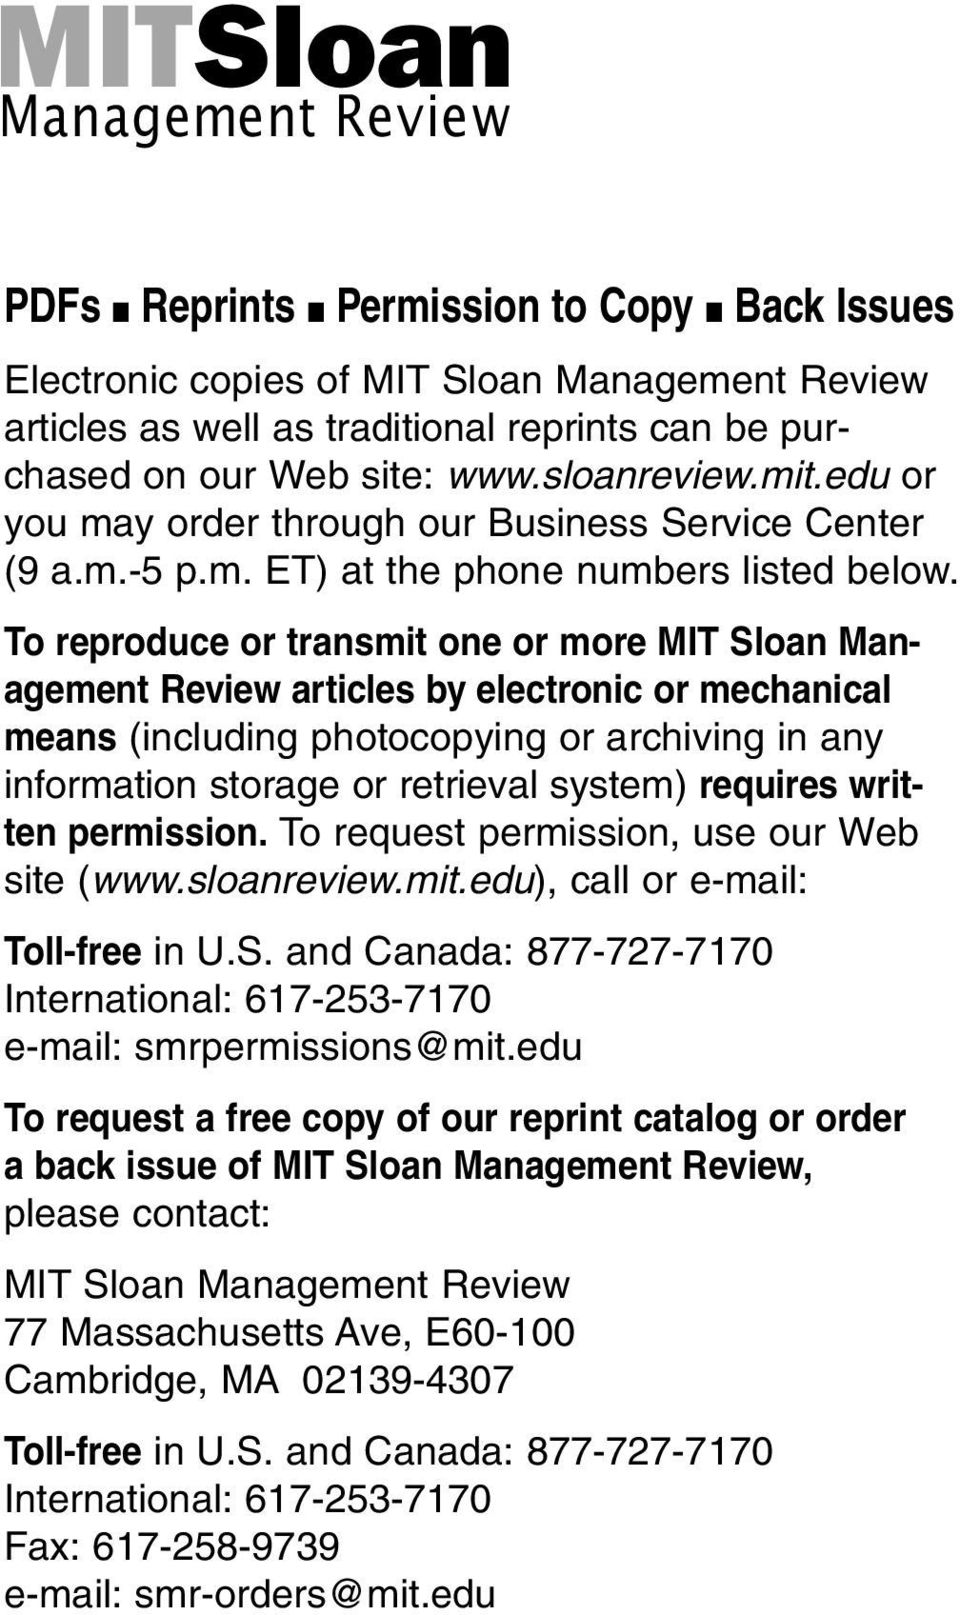 To reproduce or transmit one or more MIT Sloan Management Review articles by electronic or mechanical means (including photocopying or archiving in any information storage or retrieval system)